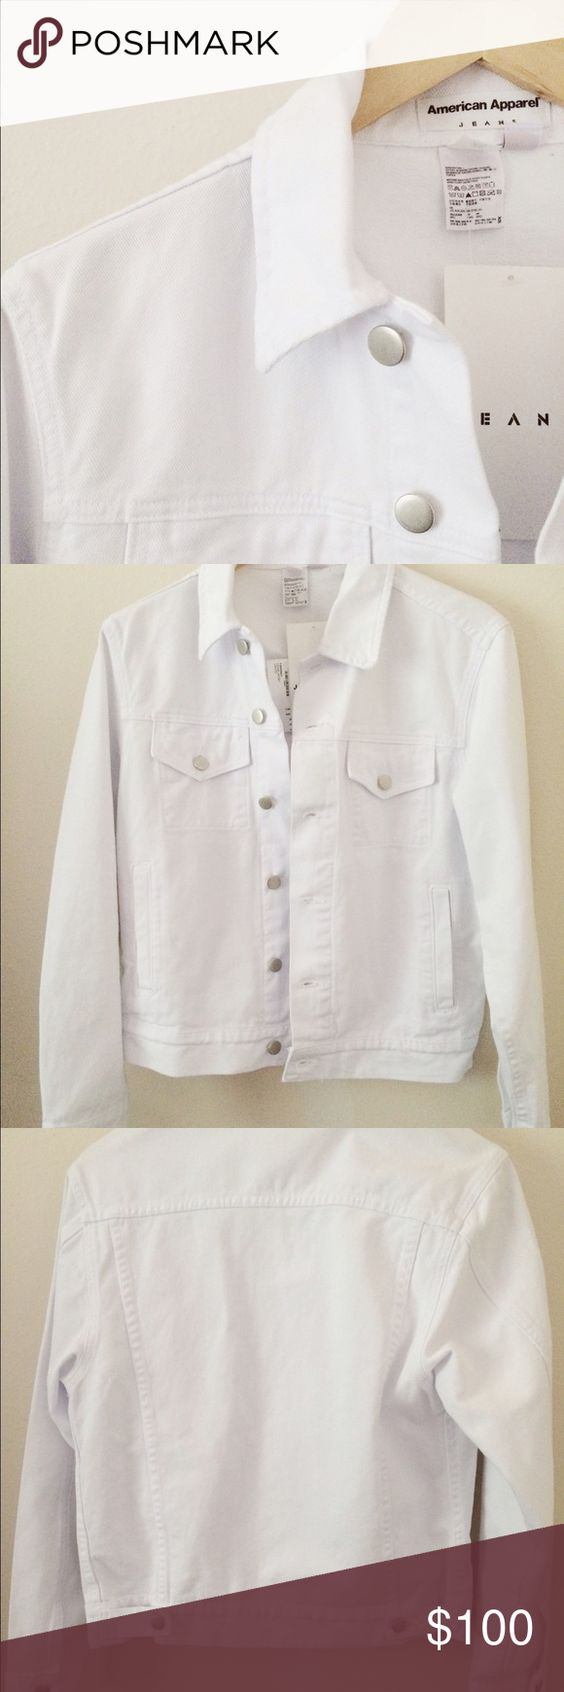 American Apparel White Jean Jacket Boutique | Coats, Jackets and ...